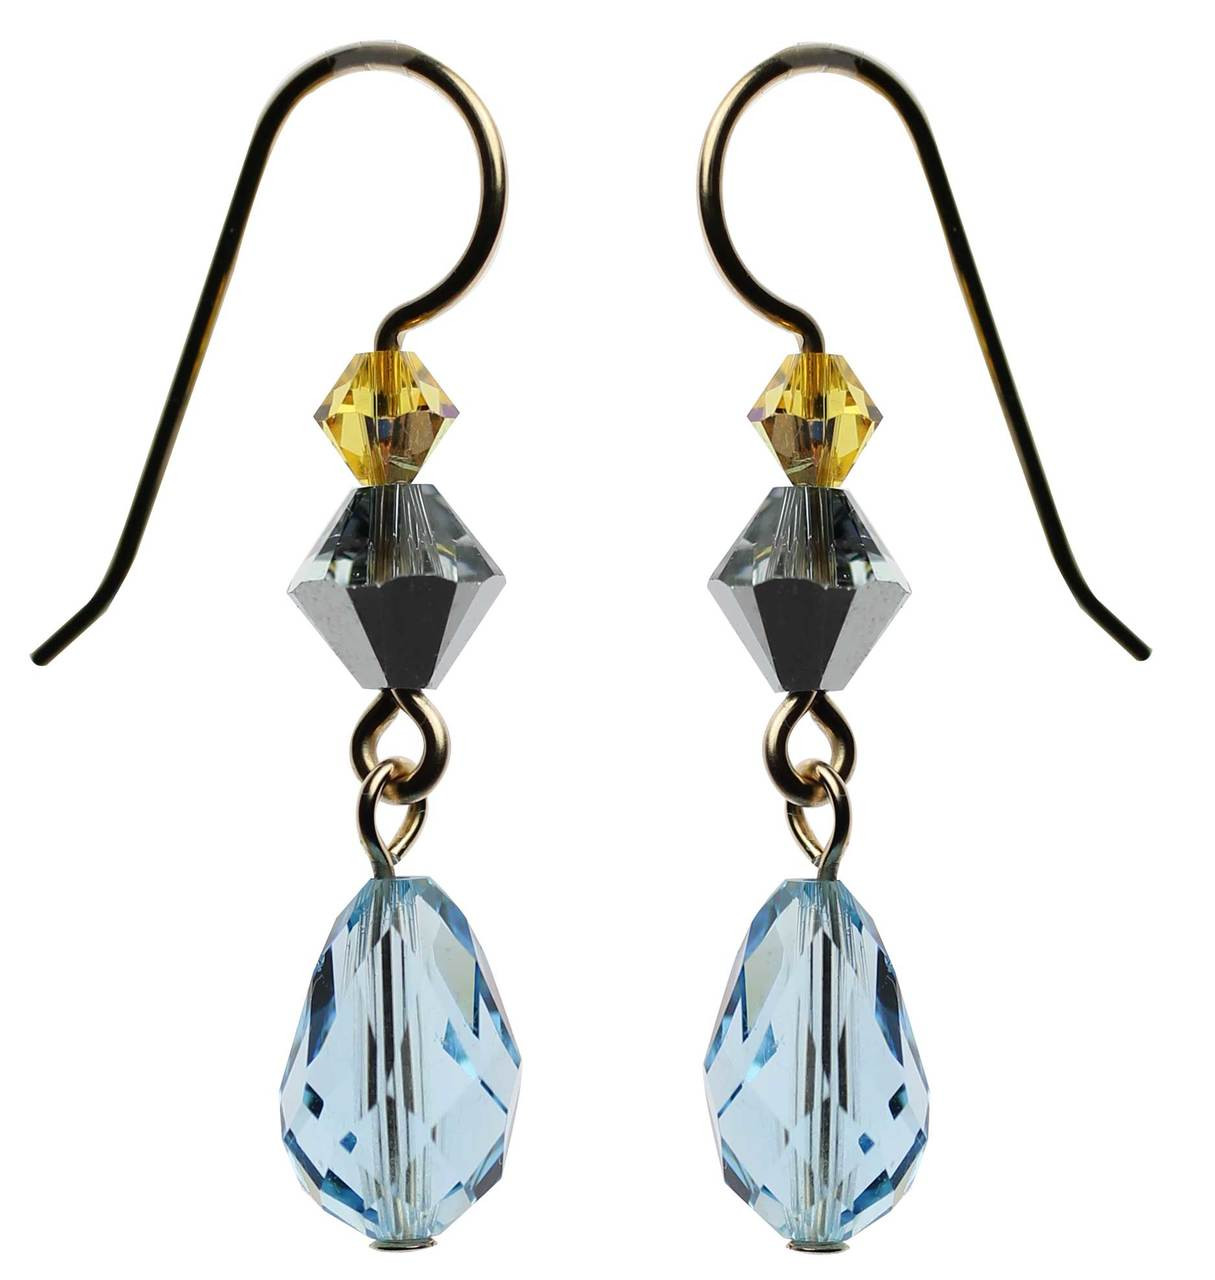 fd5ce0131 Aqua Blue Swarovski Crystal Dangling Earrings • Entirely Hand made ...